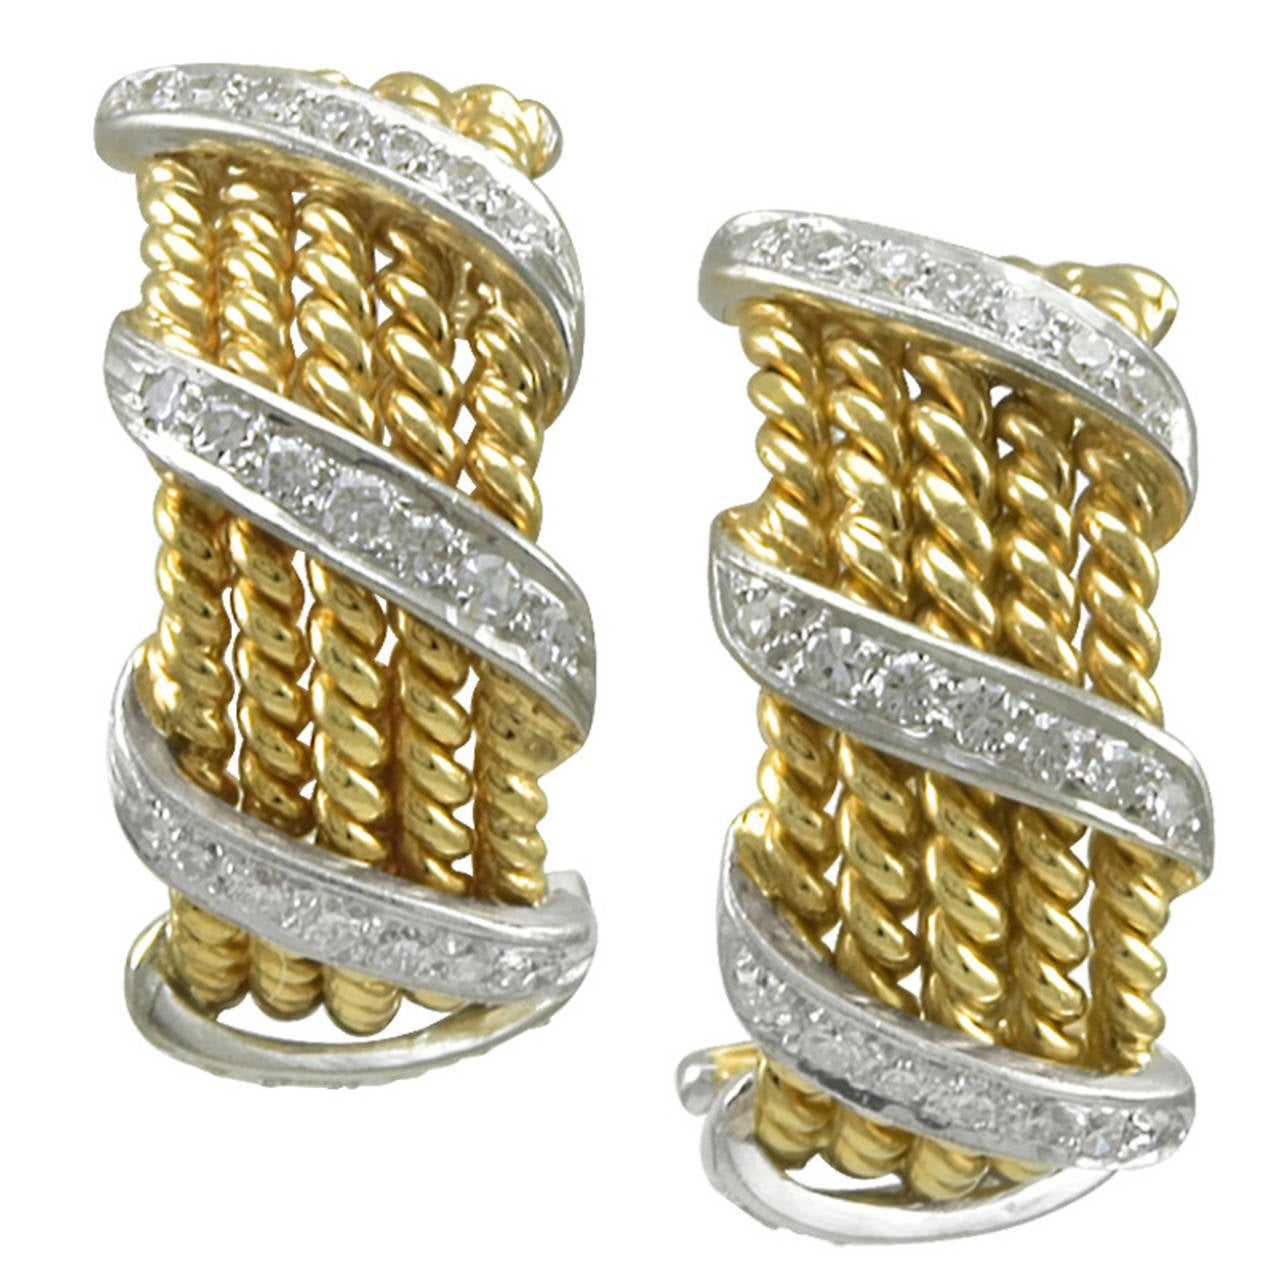 Tiffany & Co. Schlumberger Diamond Gold Band Earrings